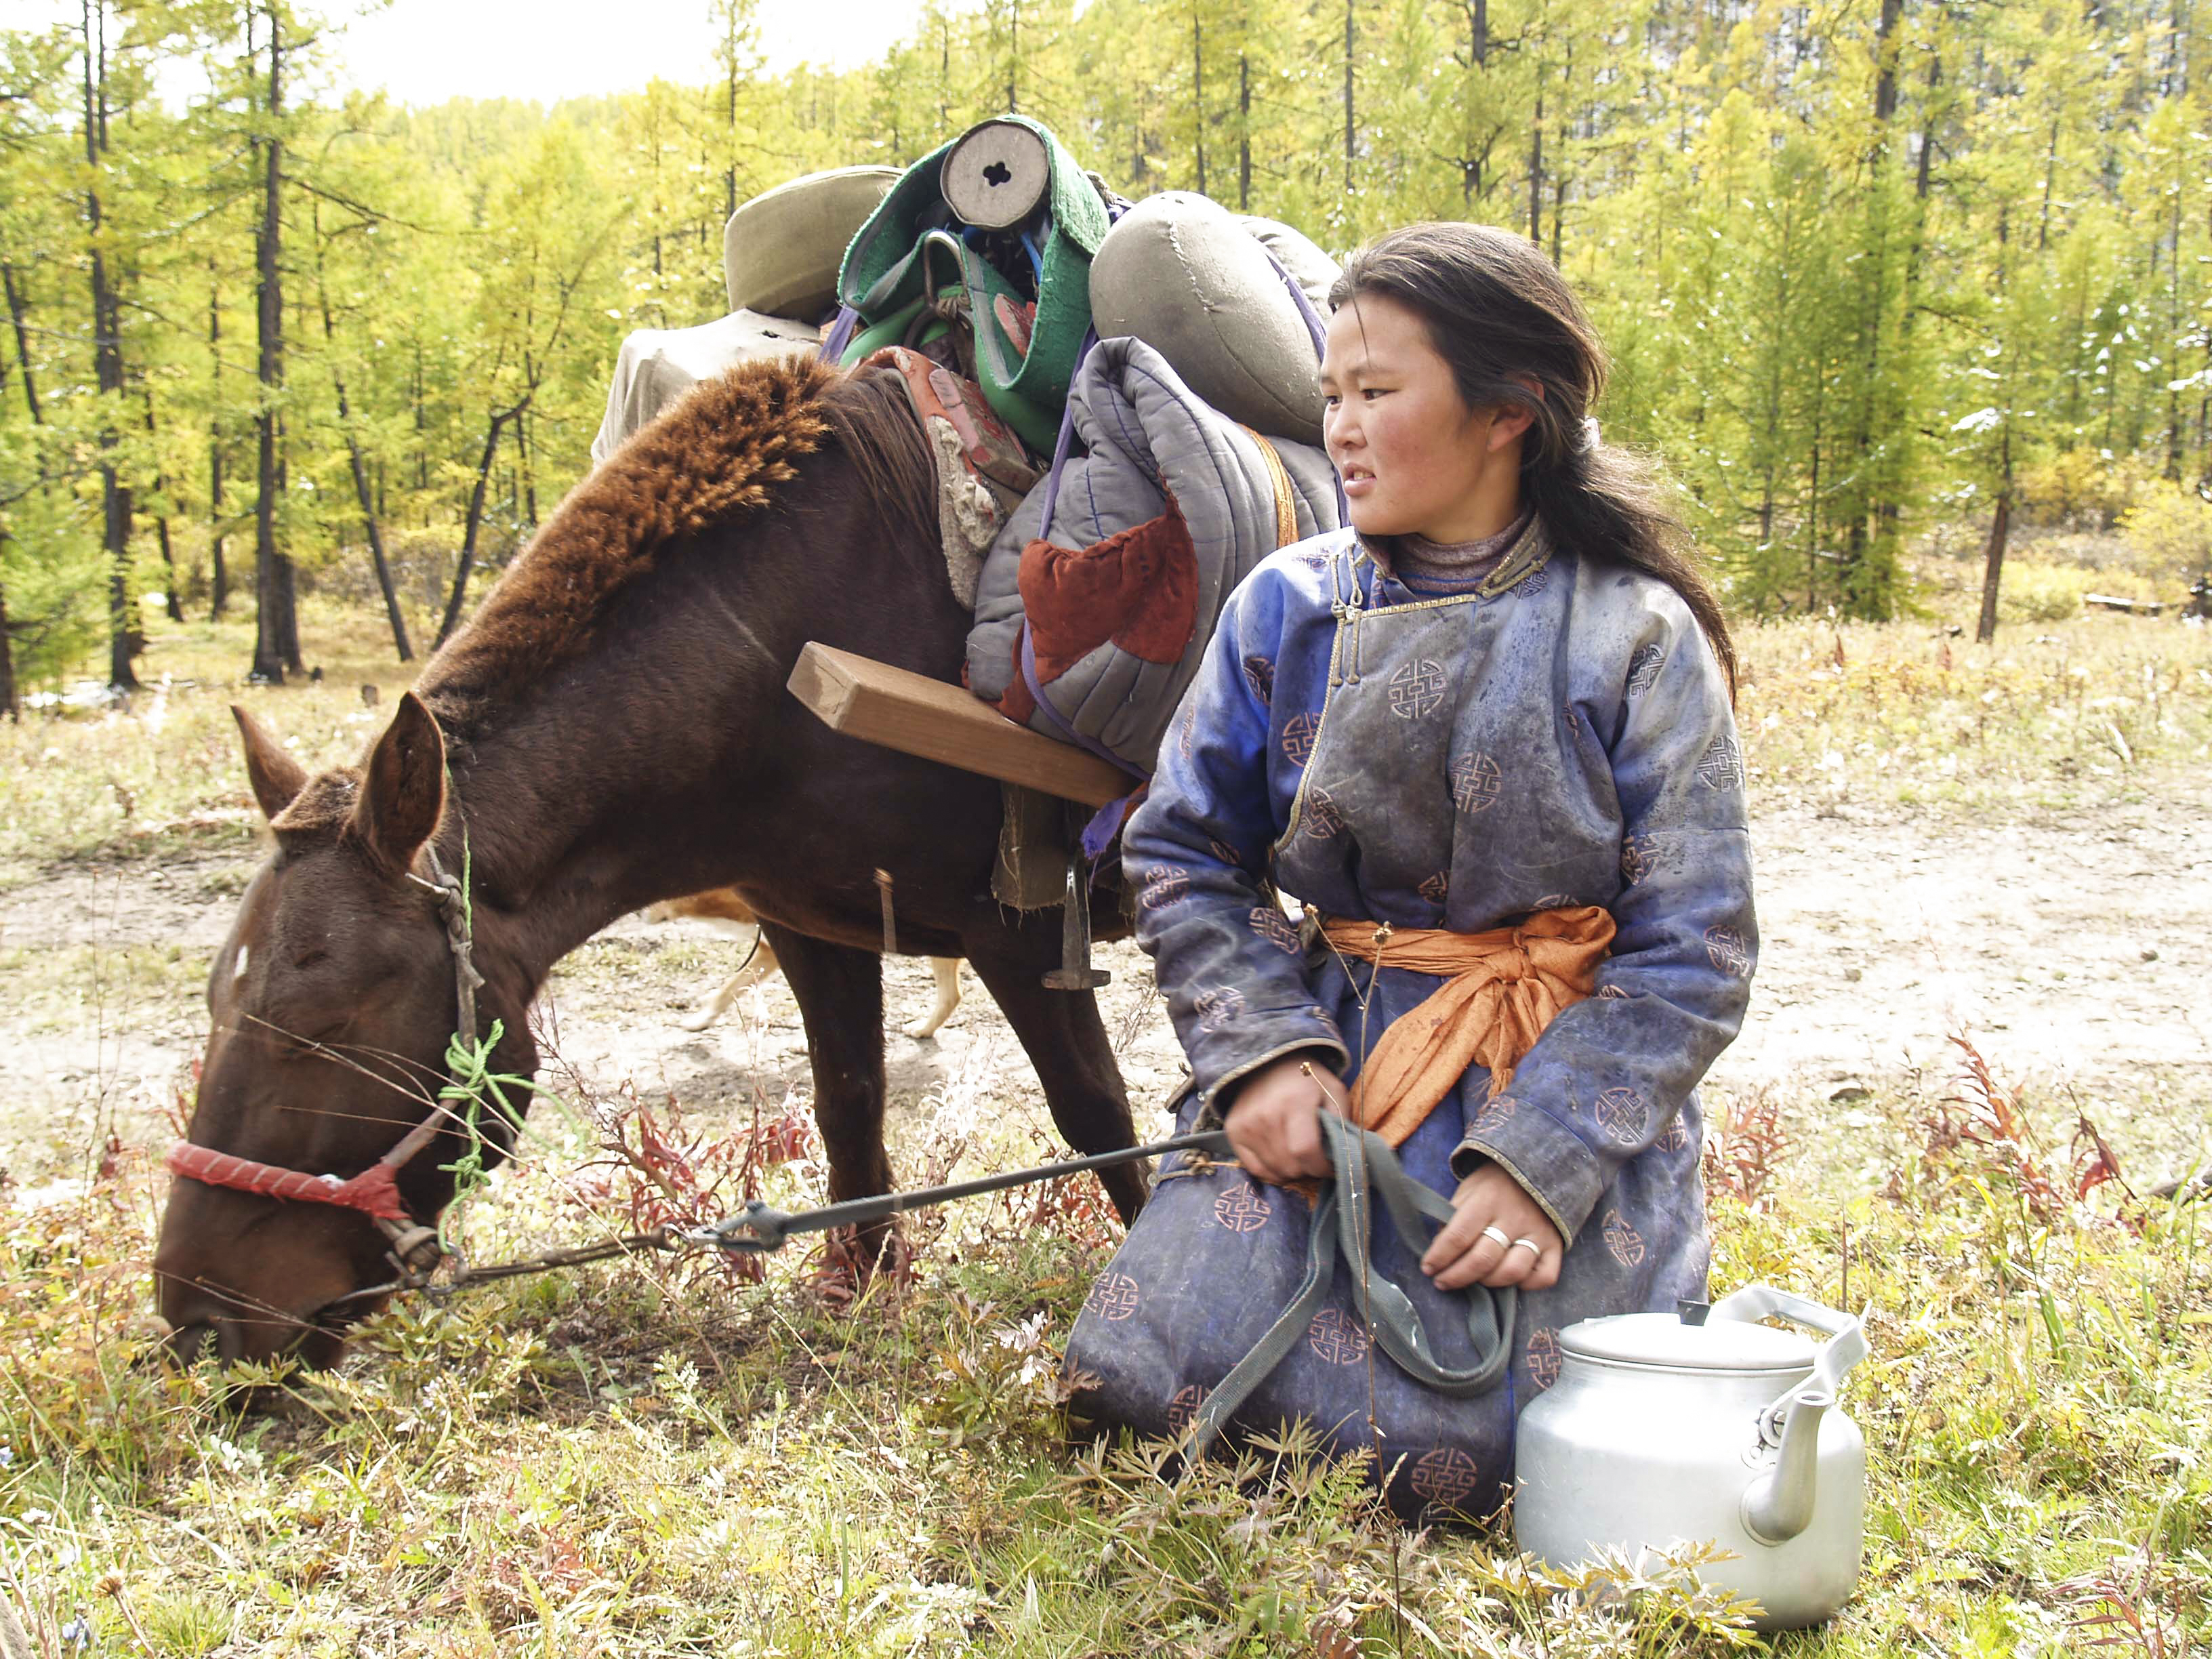 About half of the population in Mongolia are nomads